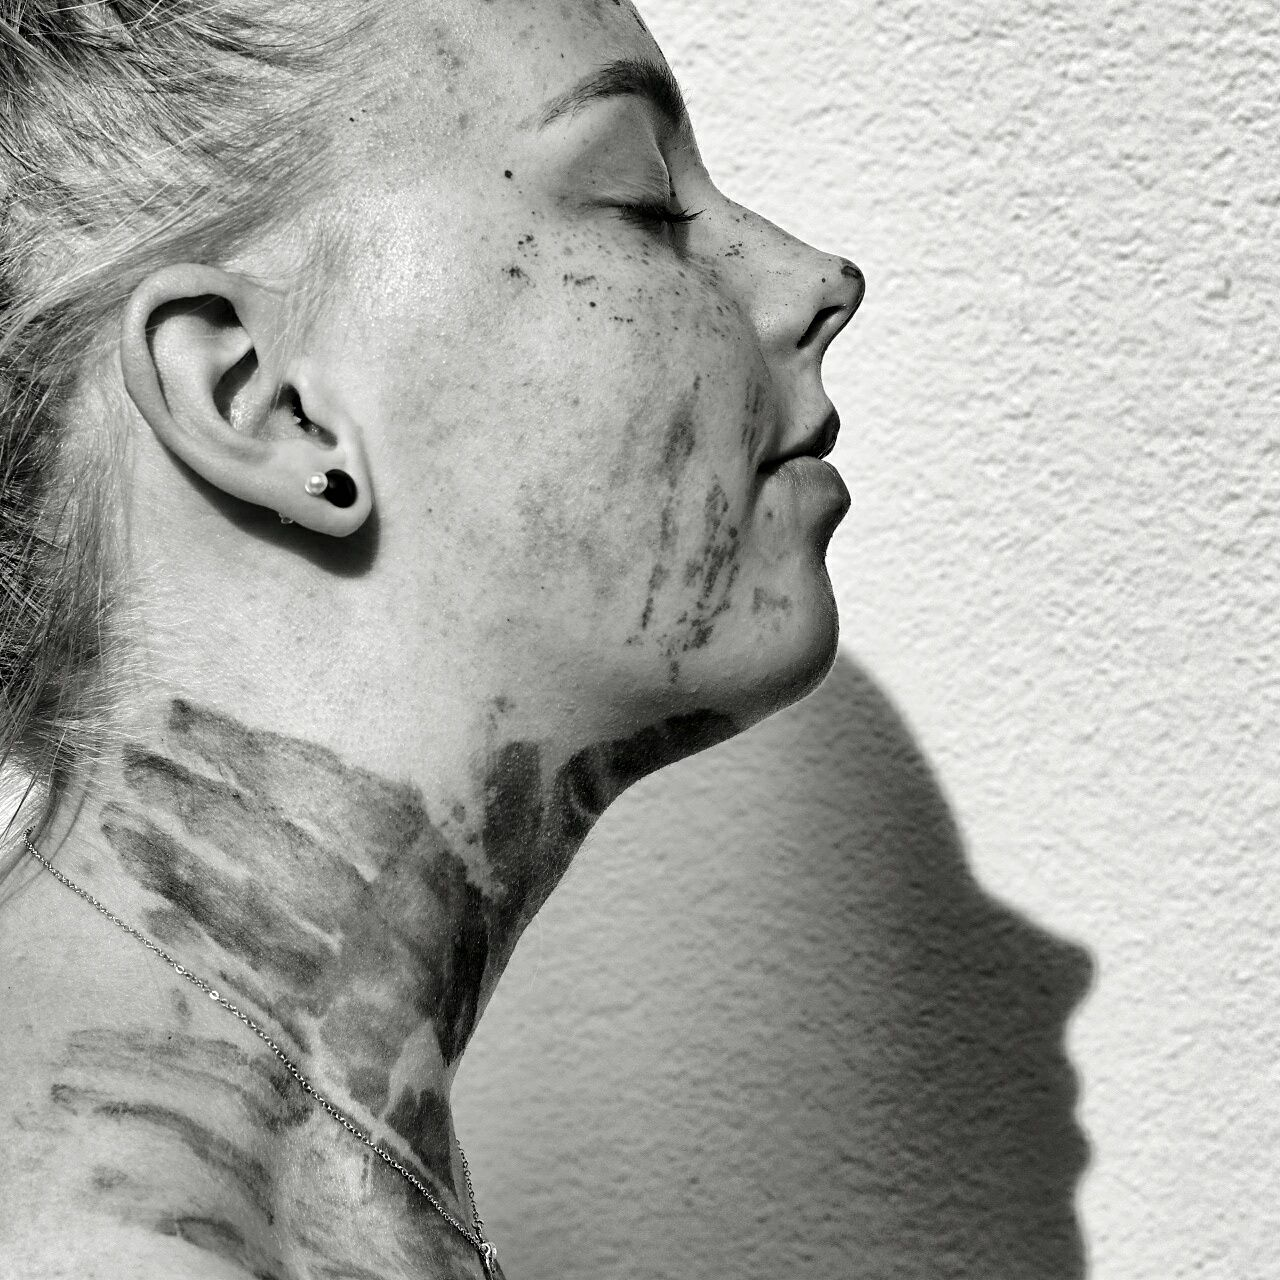 Woman with body paint against wall